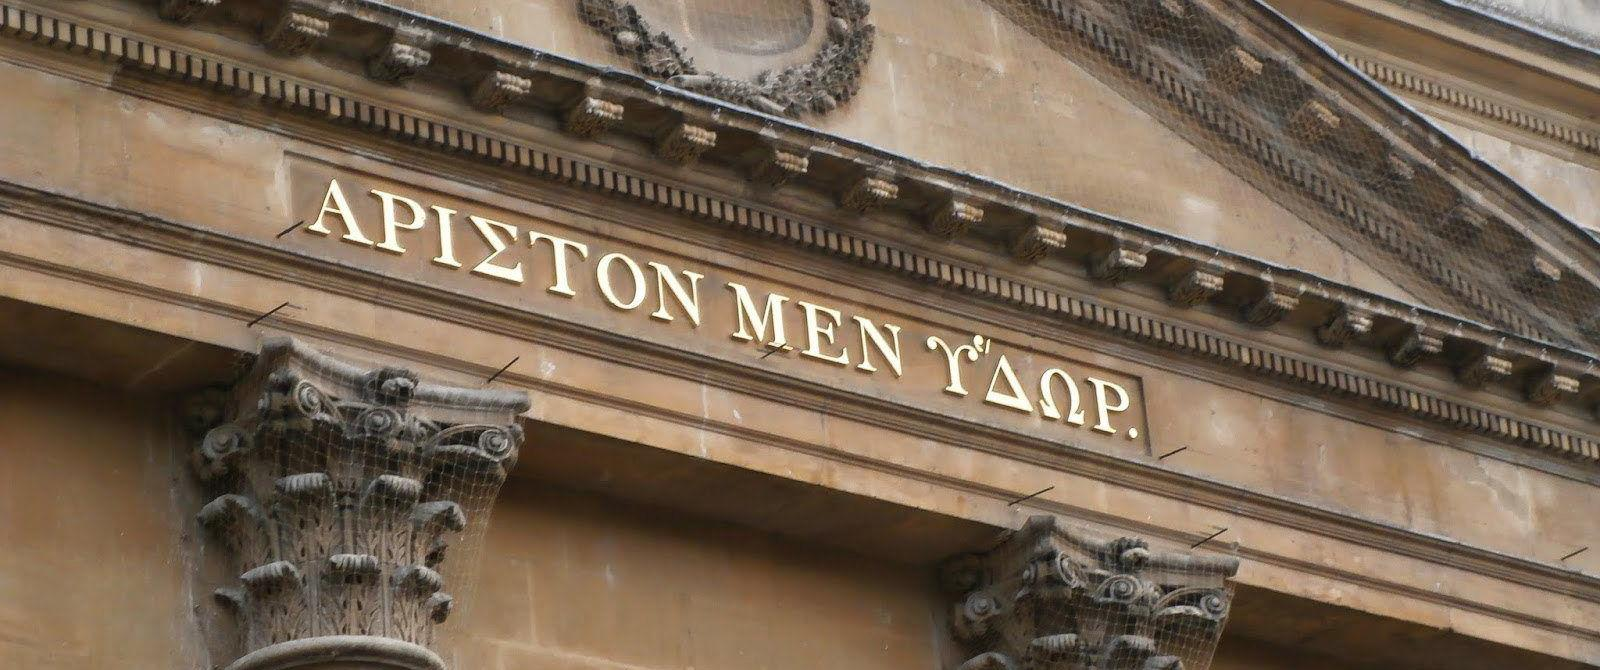 Image: Quotation by Pindar on the Pump Room. Credit: corfublues.blogspot.co.uk